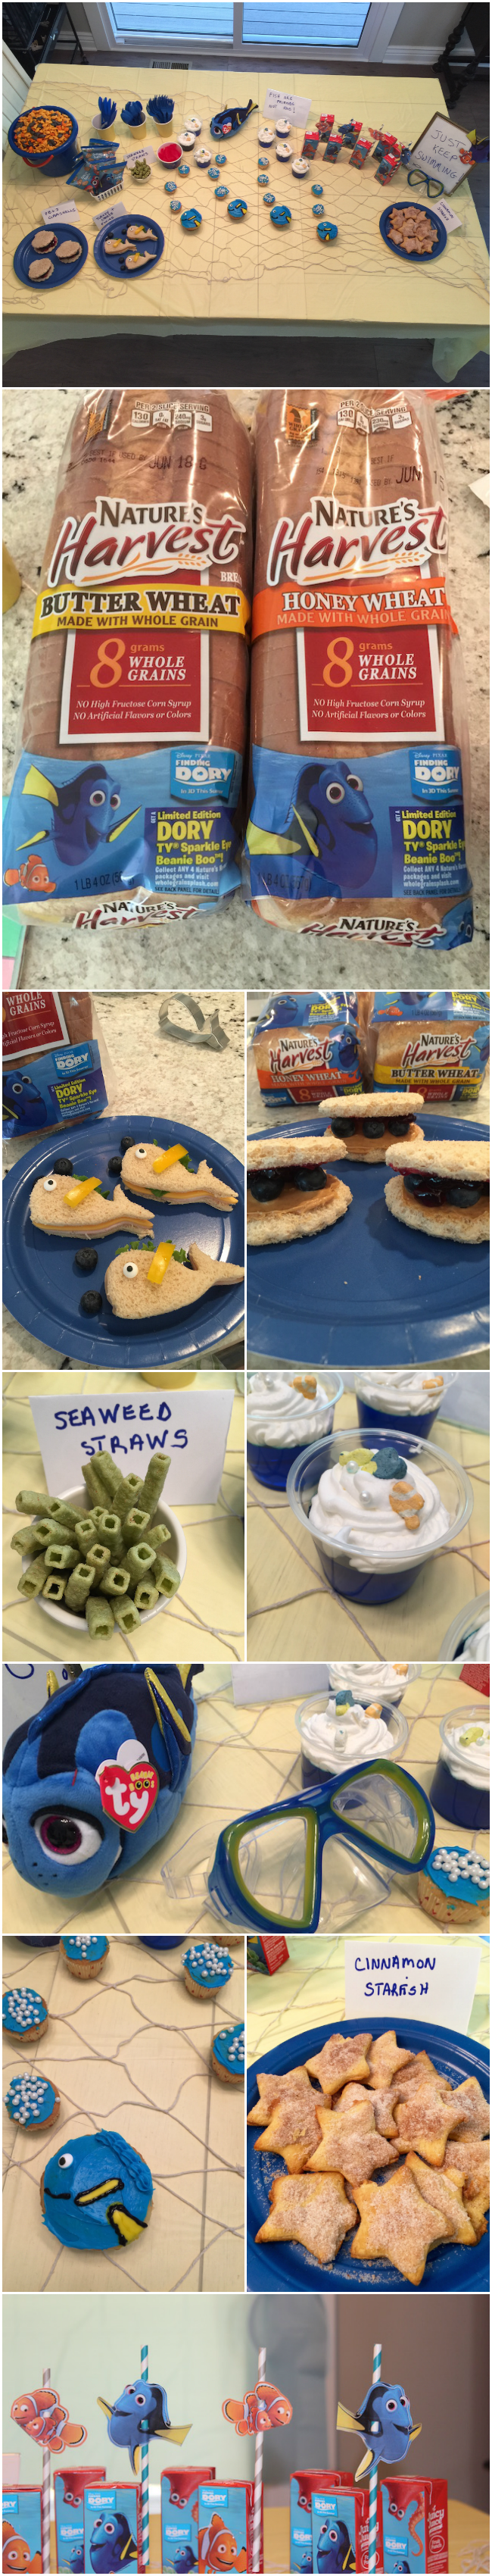 "With Finding Dory out in theaters, I thought it fitting that I create a Finding Dory "" party just for the kids to enjoy with Dory and Clamshell sandwiches."